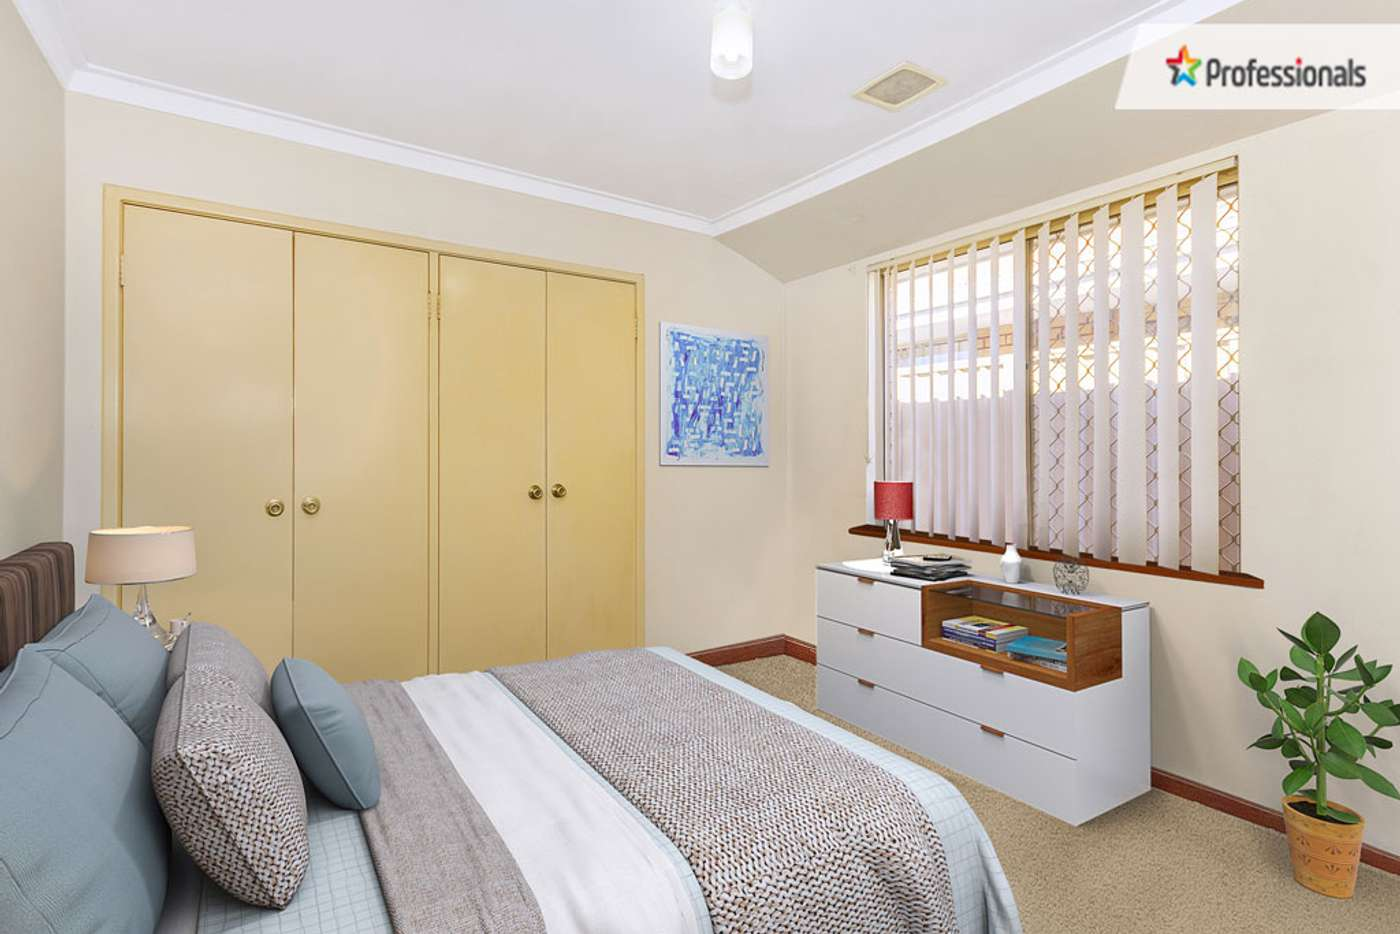 Main view of Homely villa listing, 8/13 Chich Place, Cannington WA 6107